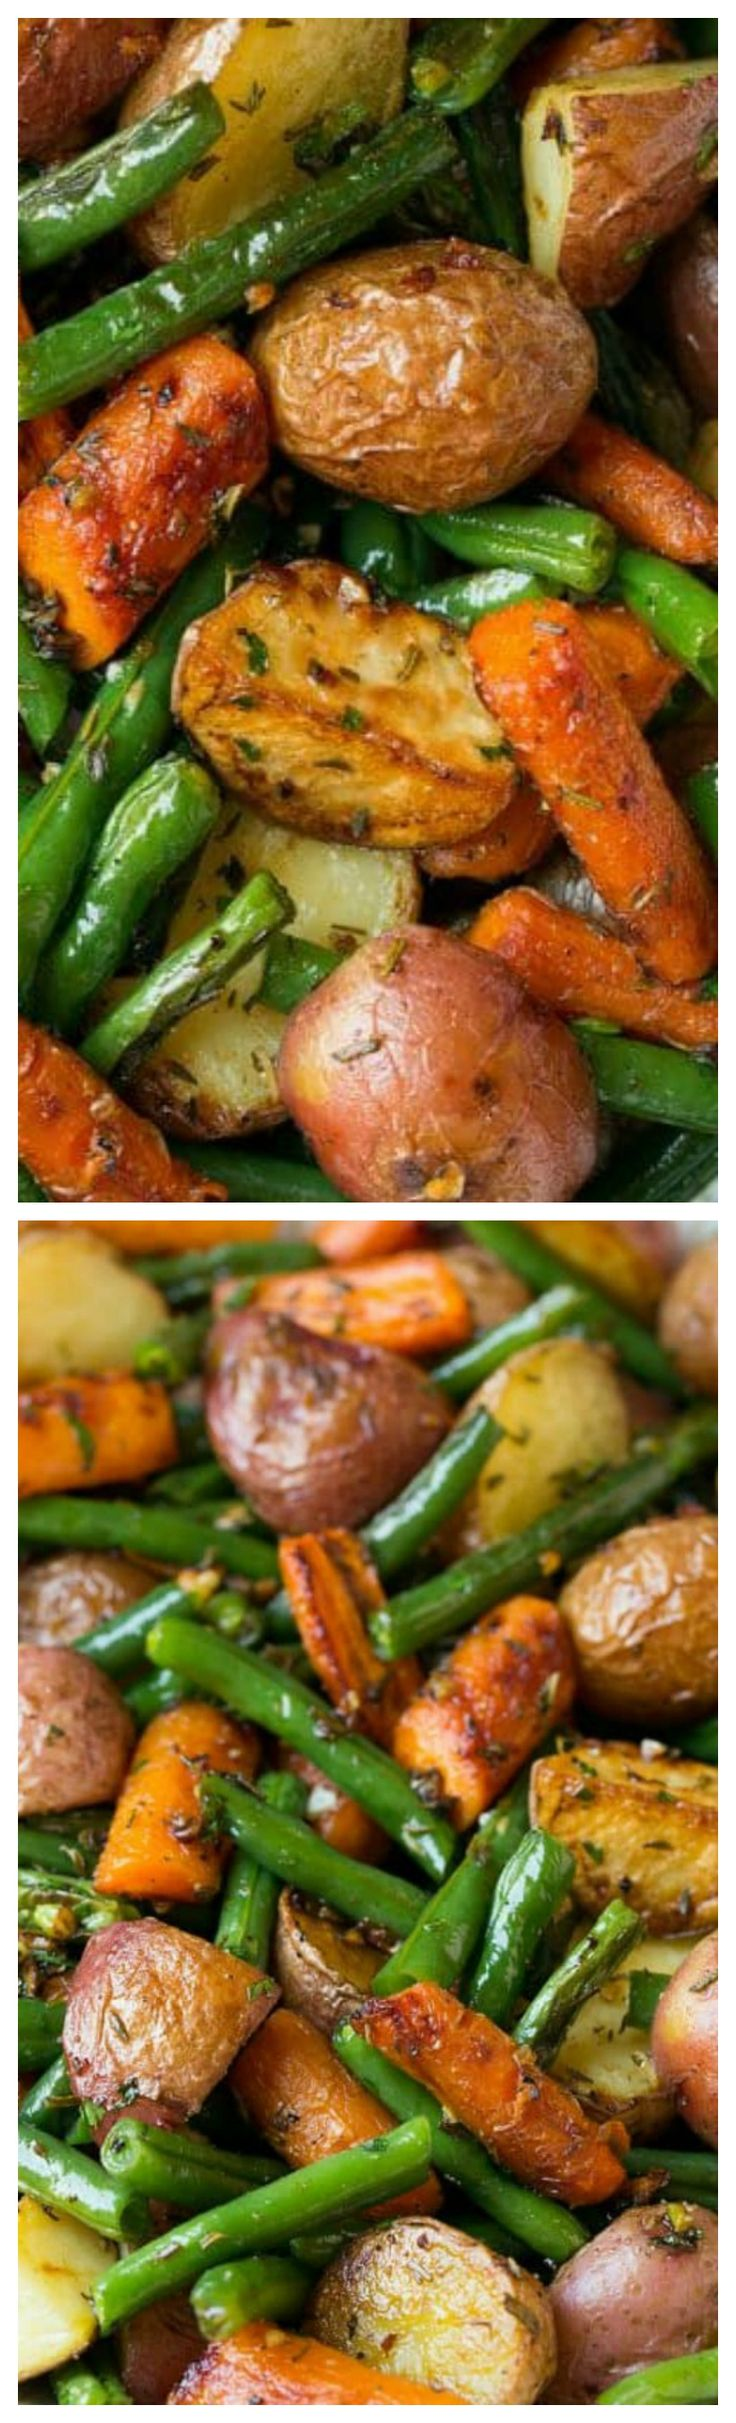 Garlic Herb Roasted Potatoes Carrots and Green Beans ~ This simple veggie blend of potatoes, carrots and green beans is seasoned with a delicious garlic and fresh herb blend then roasted to perfection (halloween appetizers veggies)